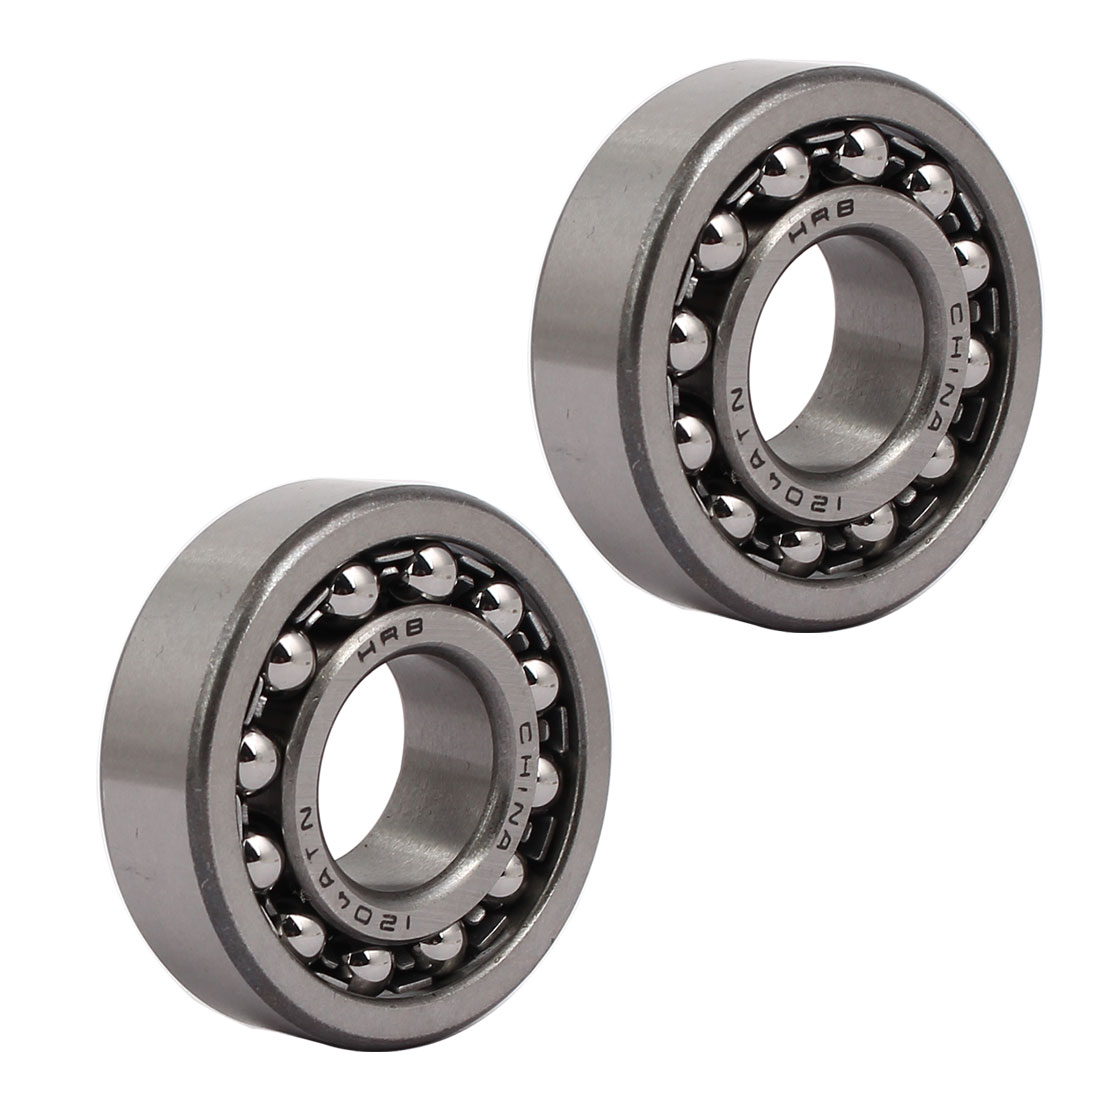 47mmx20mmx14mm 1204 Double Row Self-Aligning Ball Bearing 2pcs